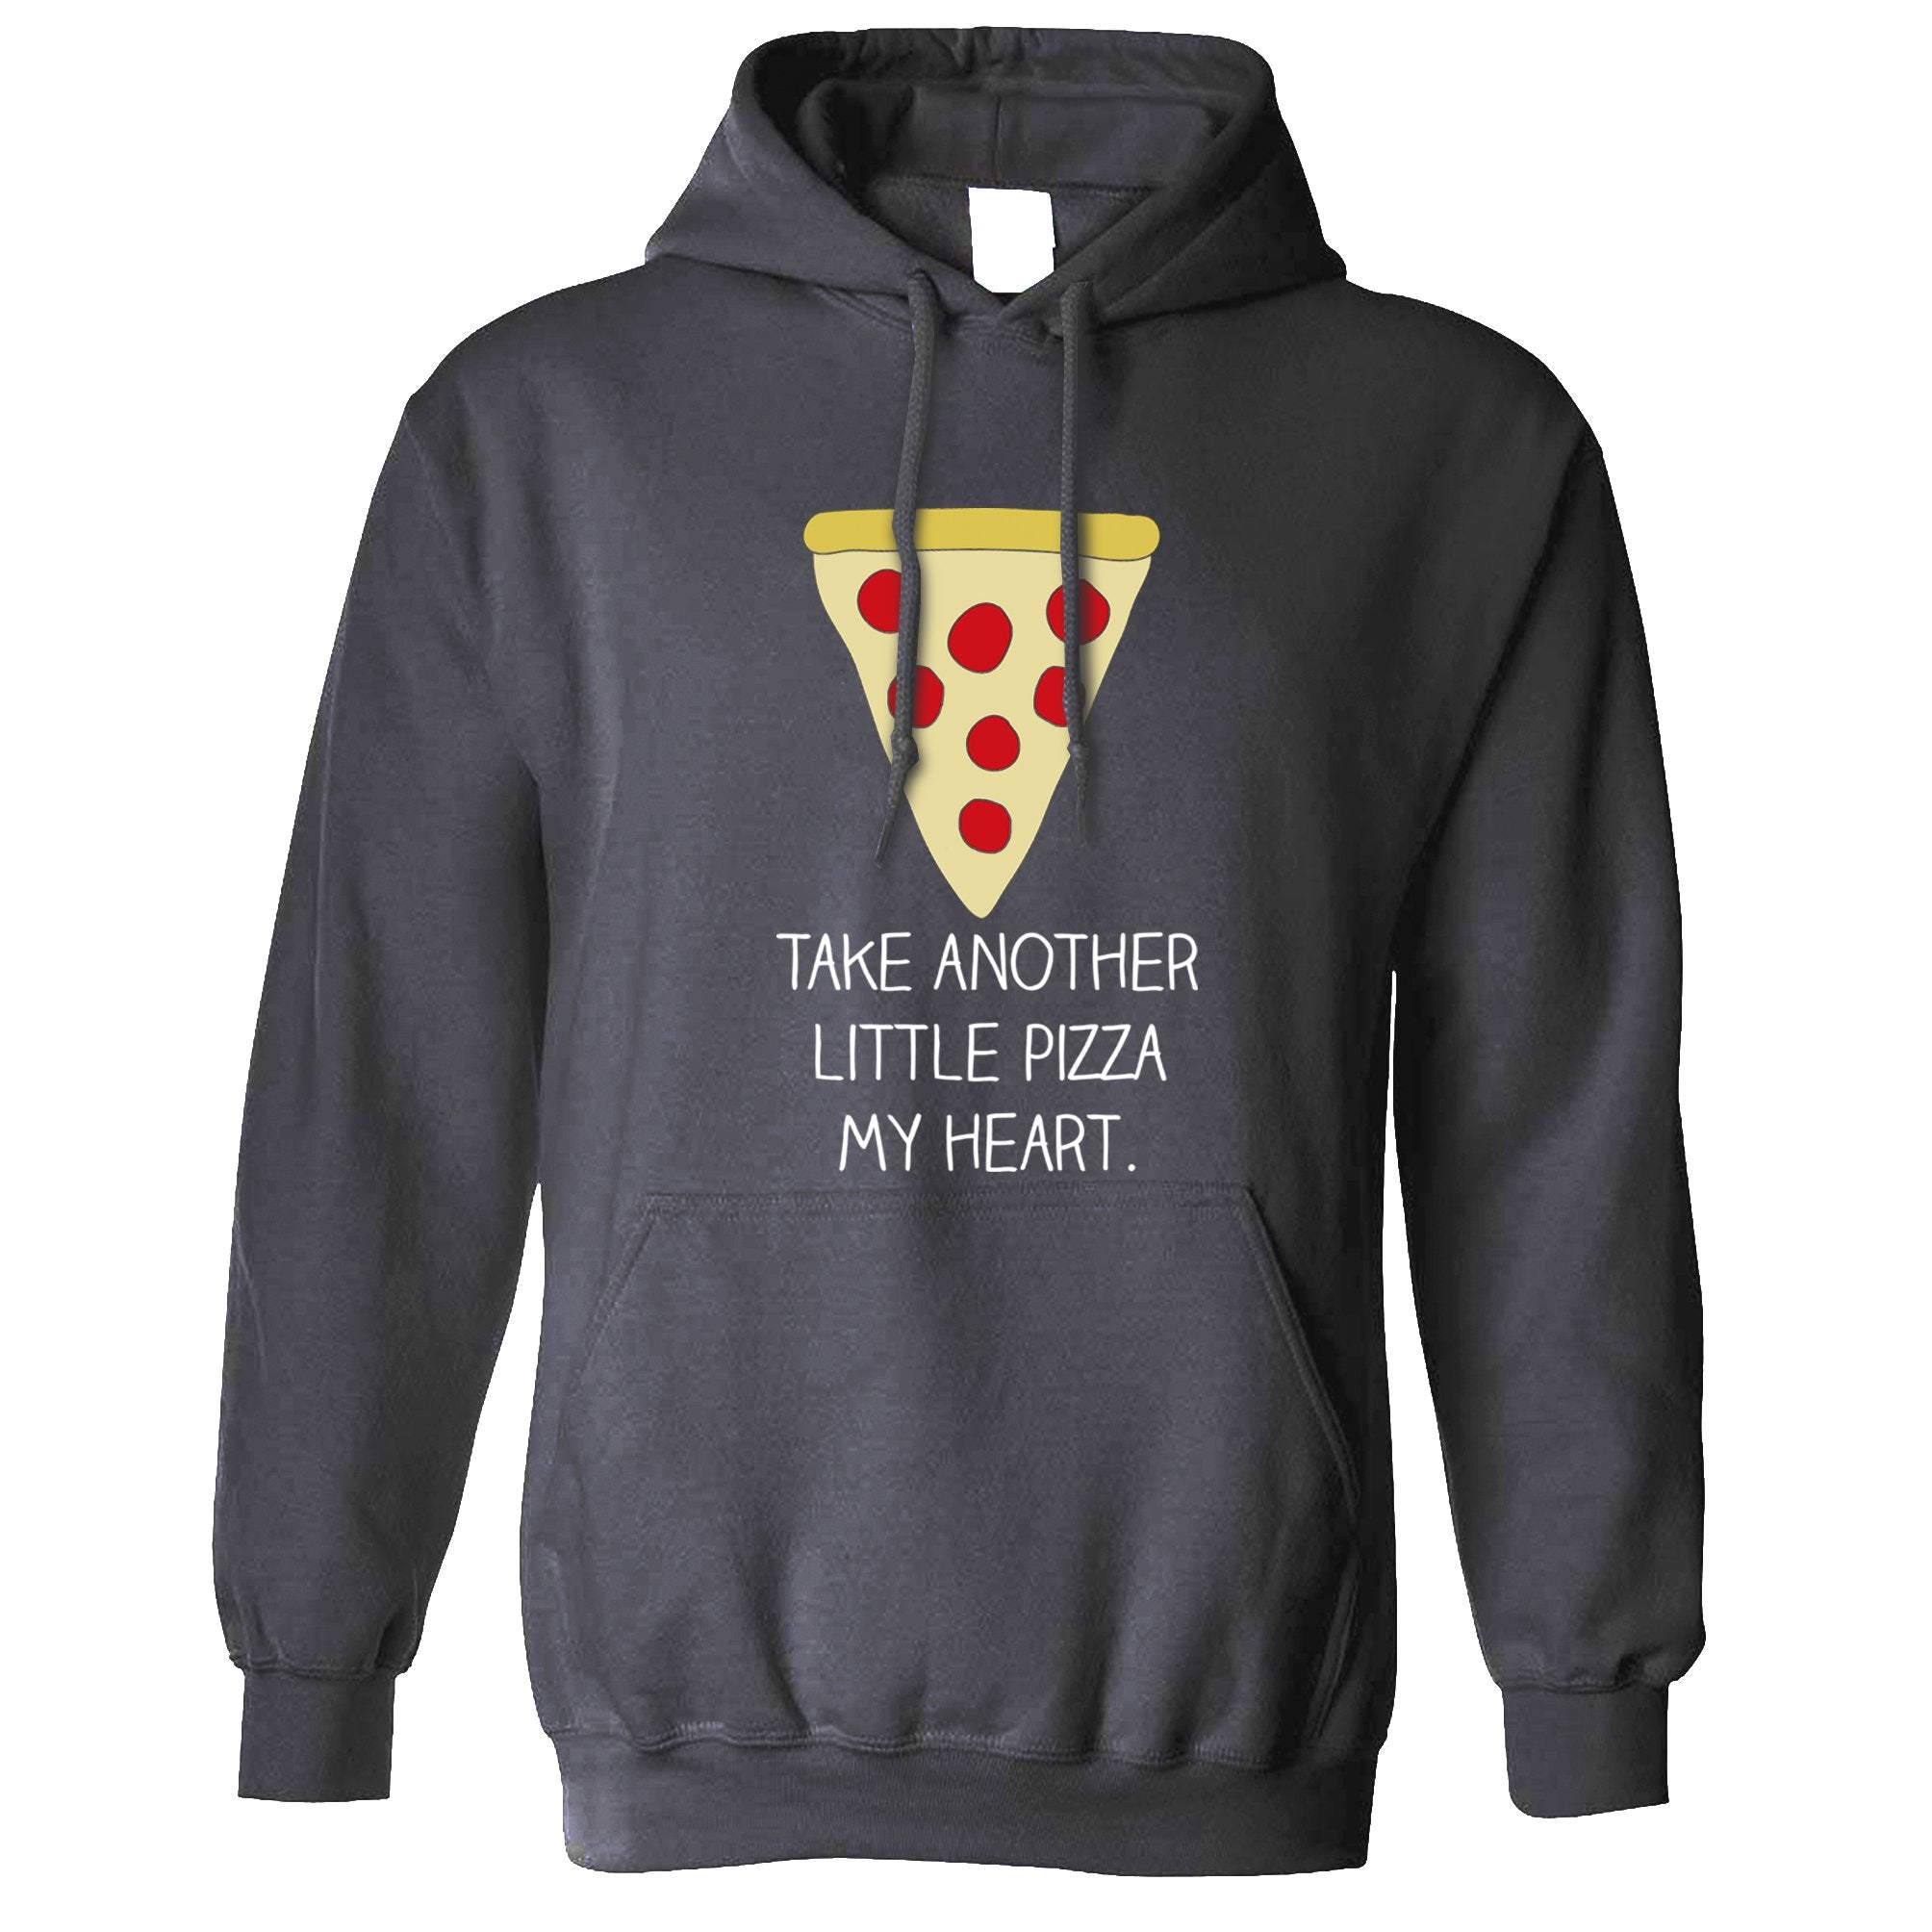 Novelty Hoodie Take Another Little Pizza My Heart Pun Hooded Jumper